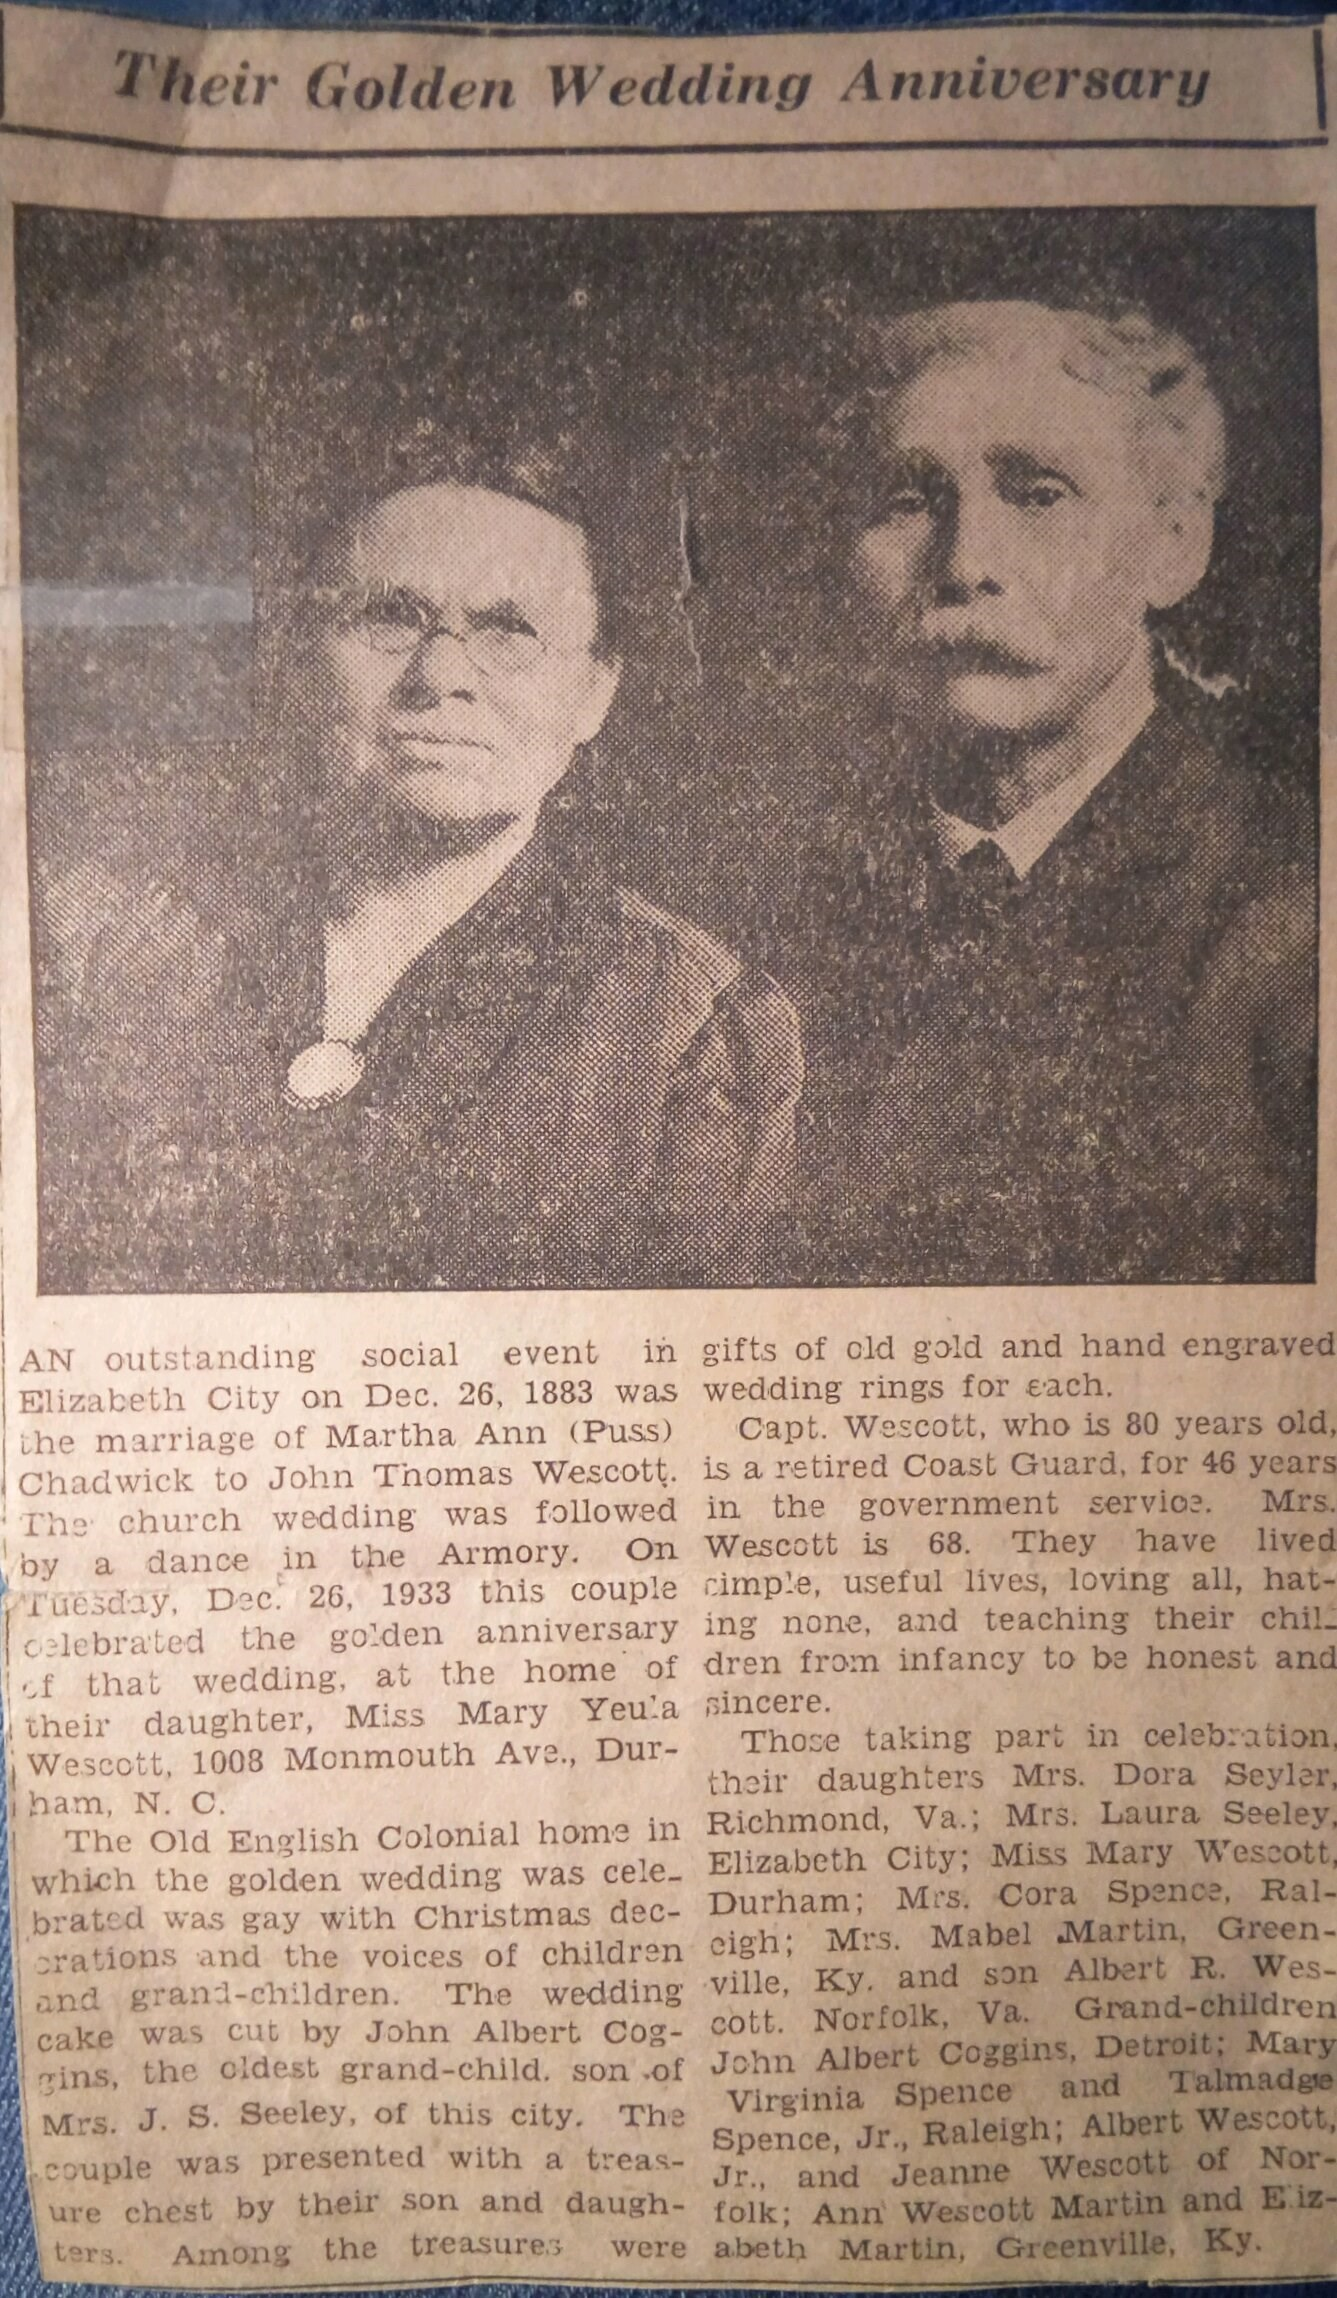 John T Wescott and Martha Chadwick's Golden Wedding Article